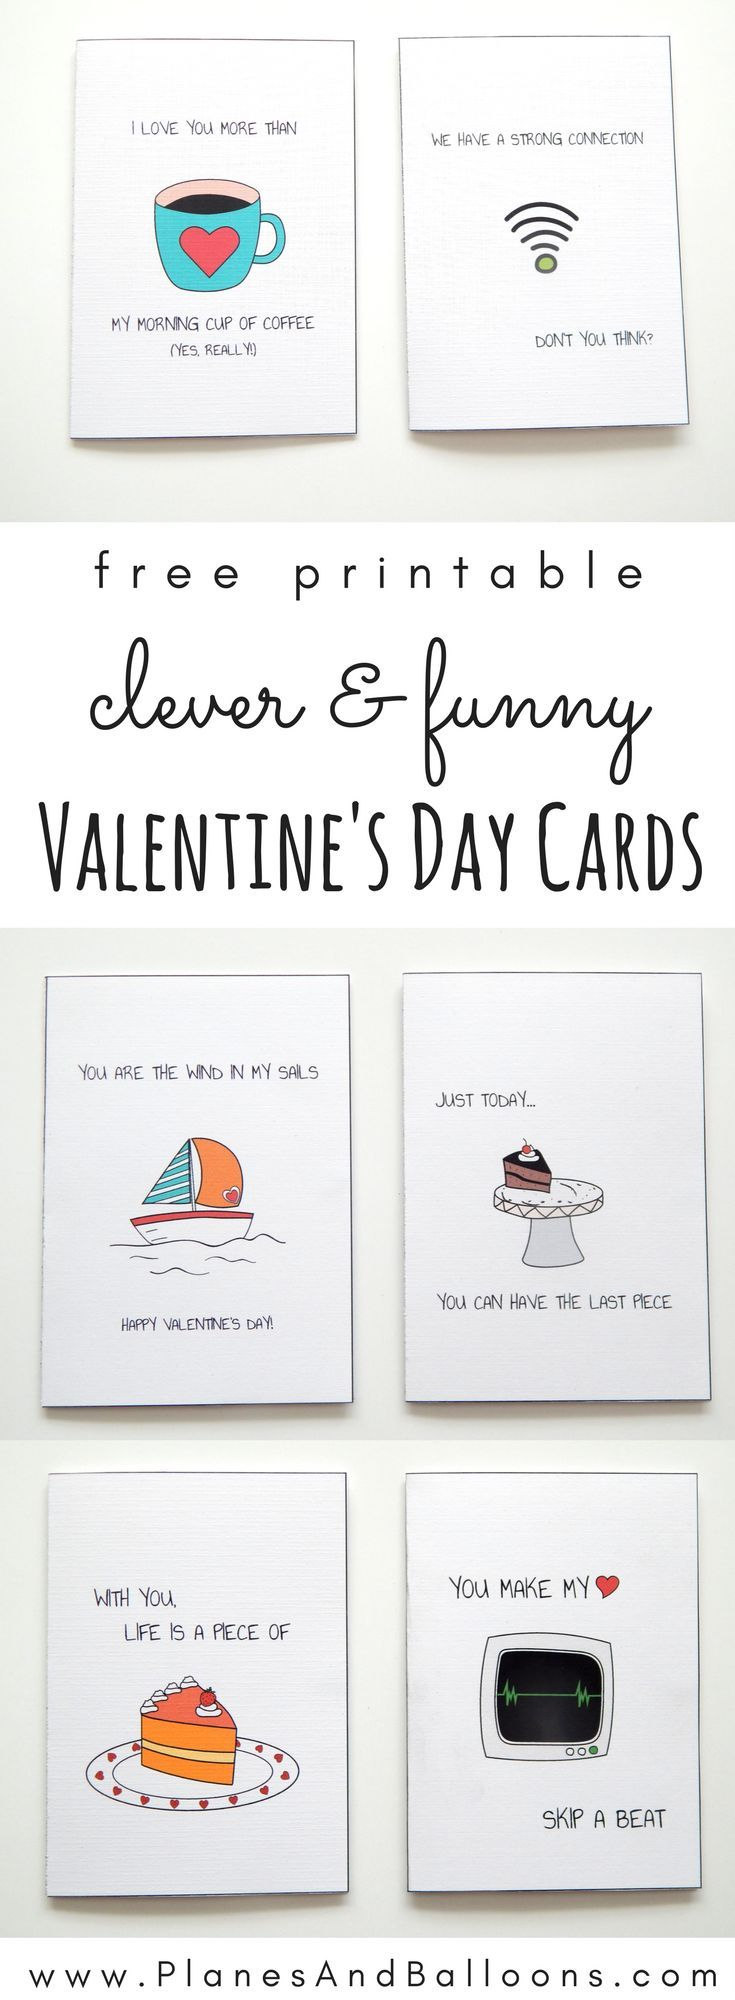 Free printable Valentine's day cards that are funny and clever. I am defintiely going to use them this year!